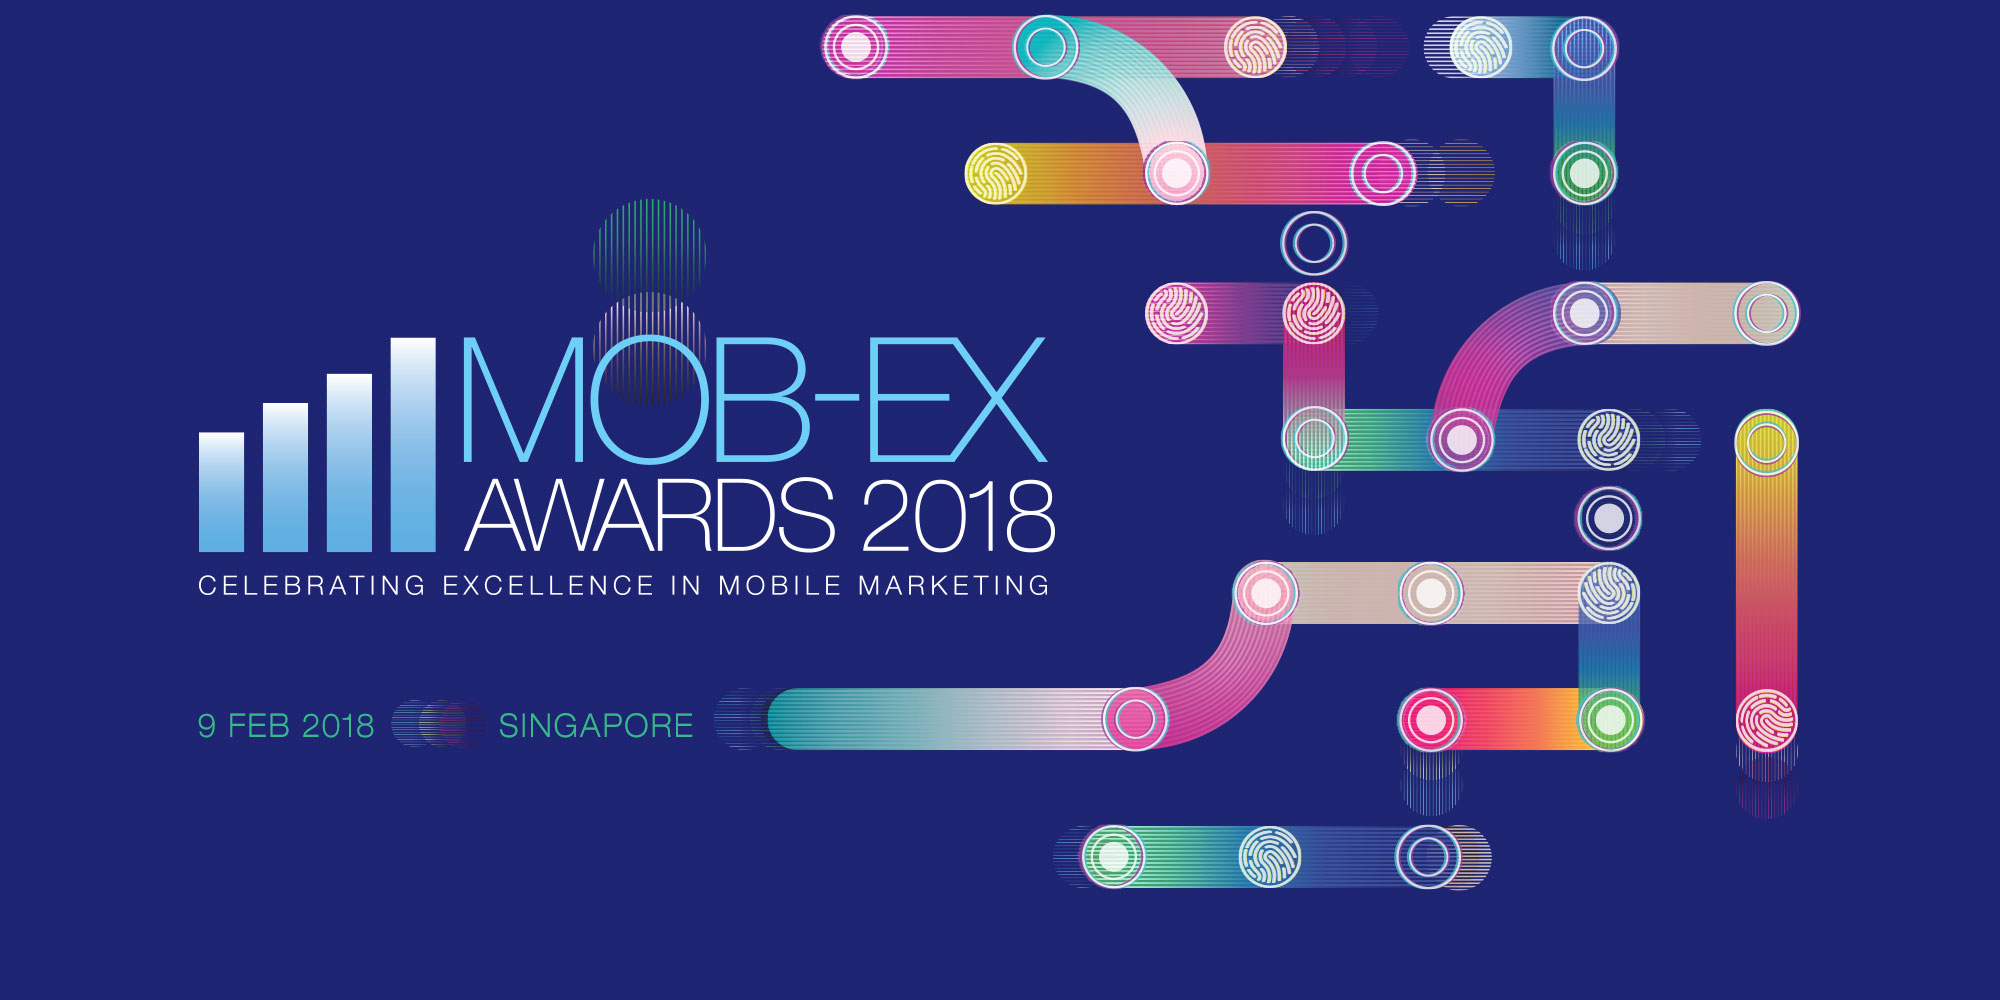 Mob-Ex Awards 2018